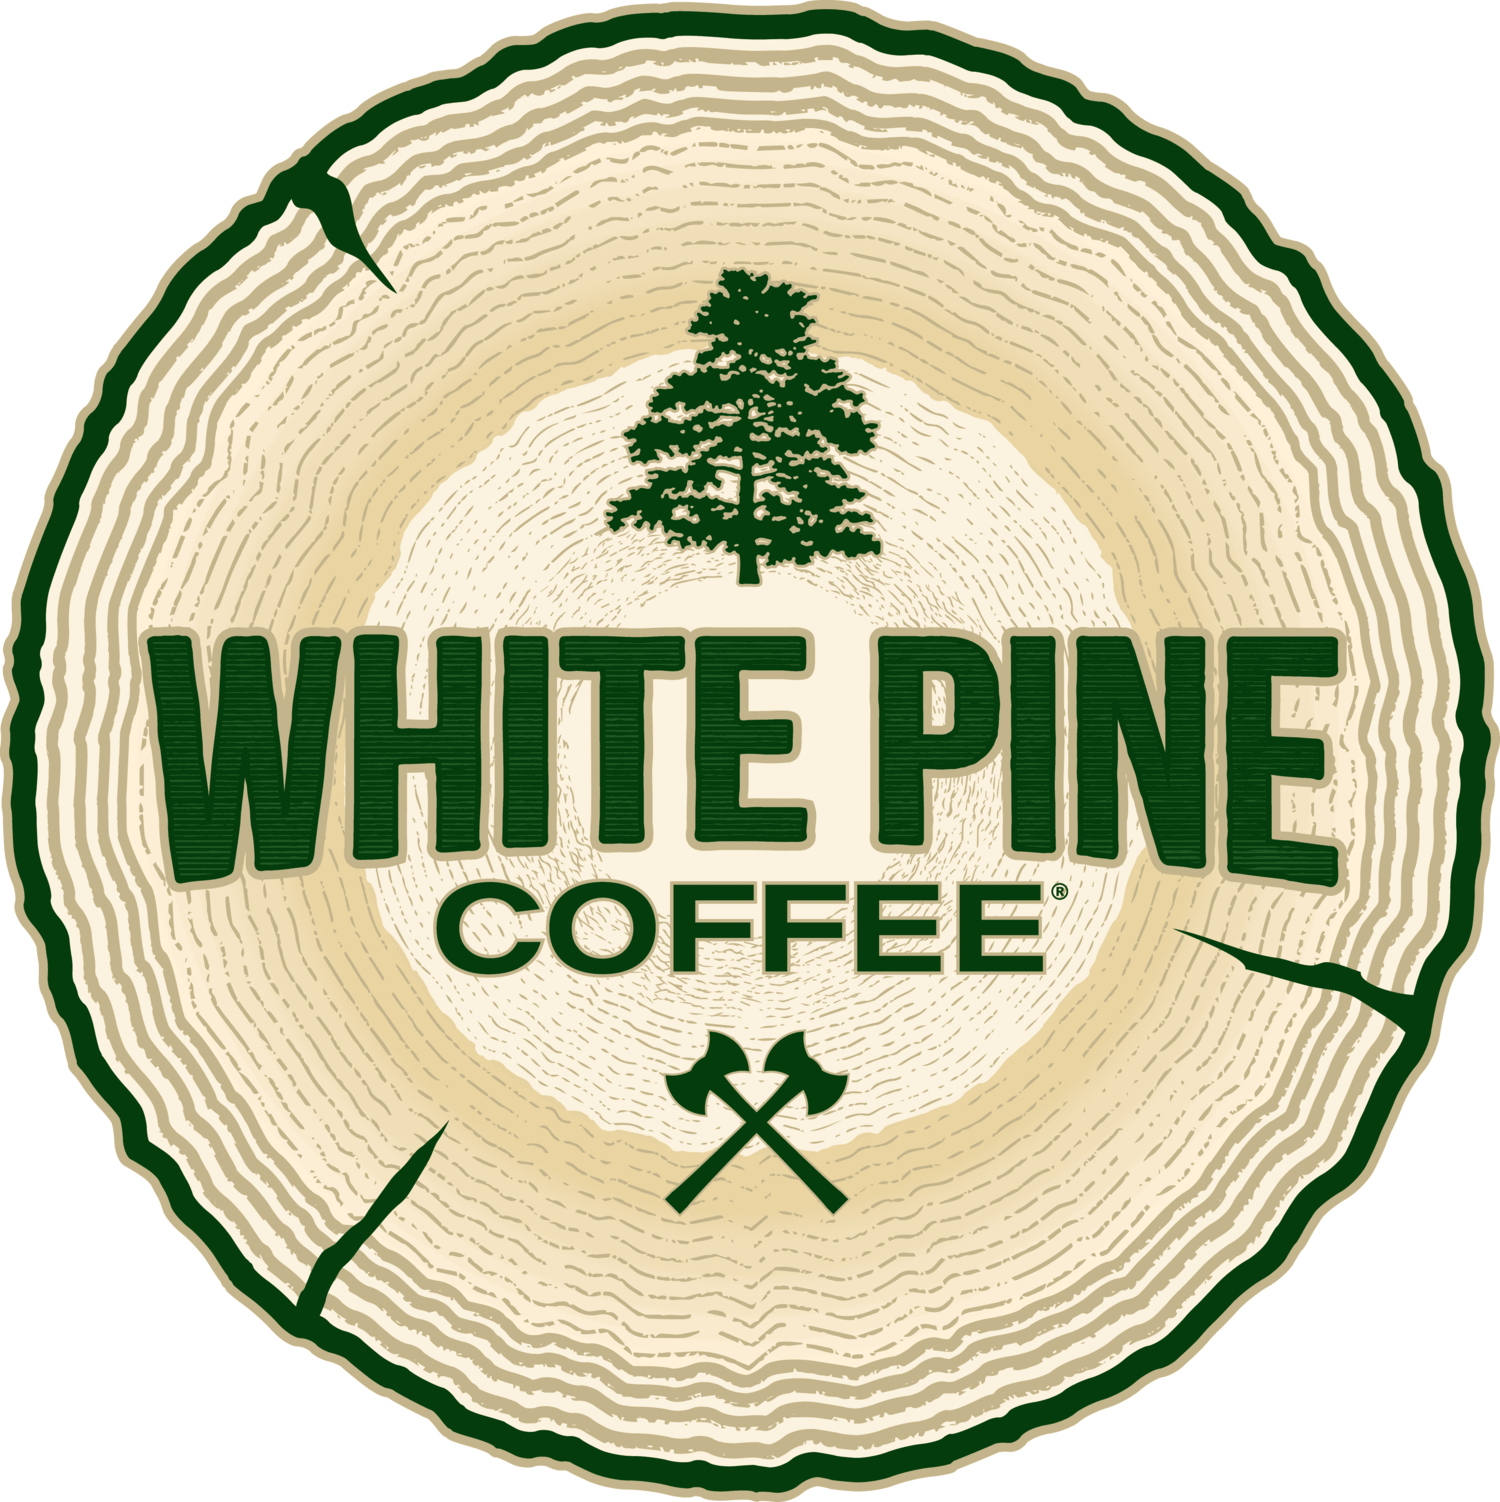 White Pine Coffee - Small Batch Roasted